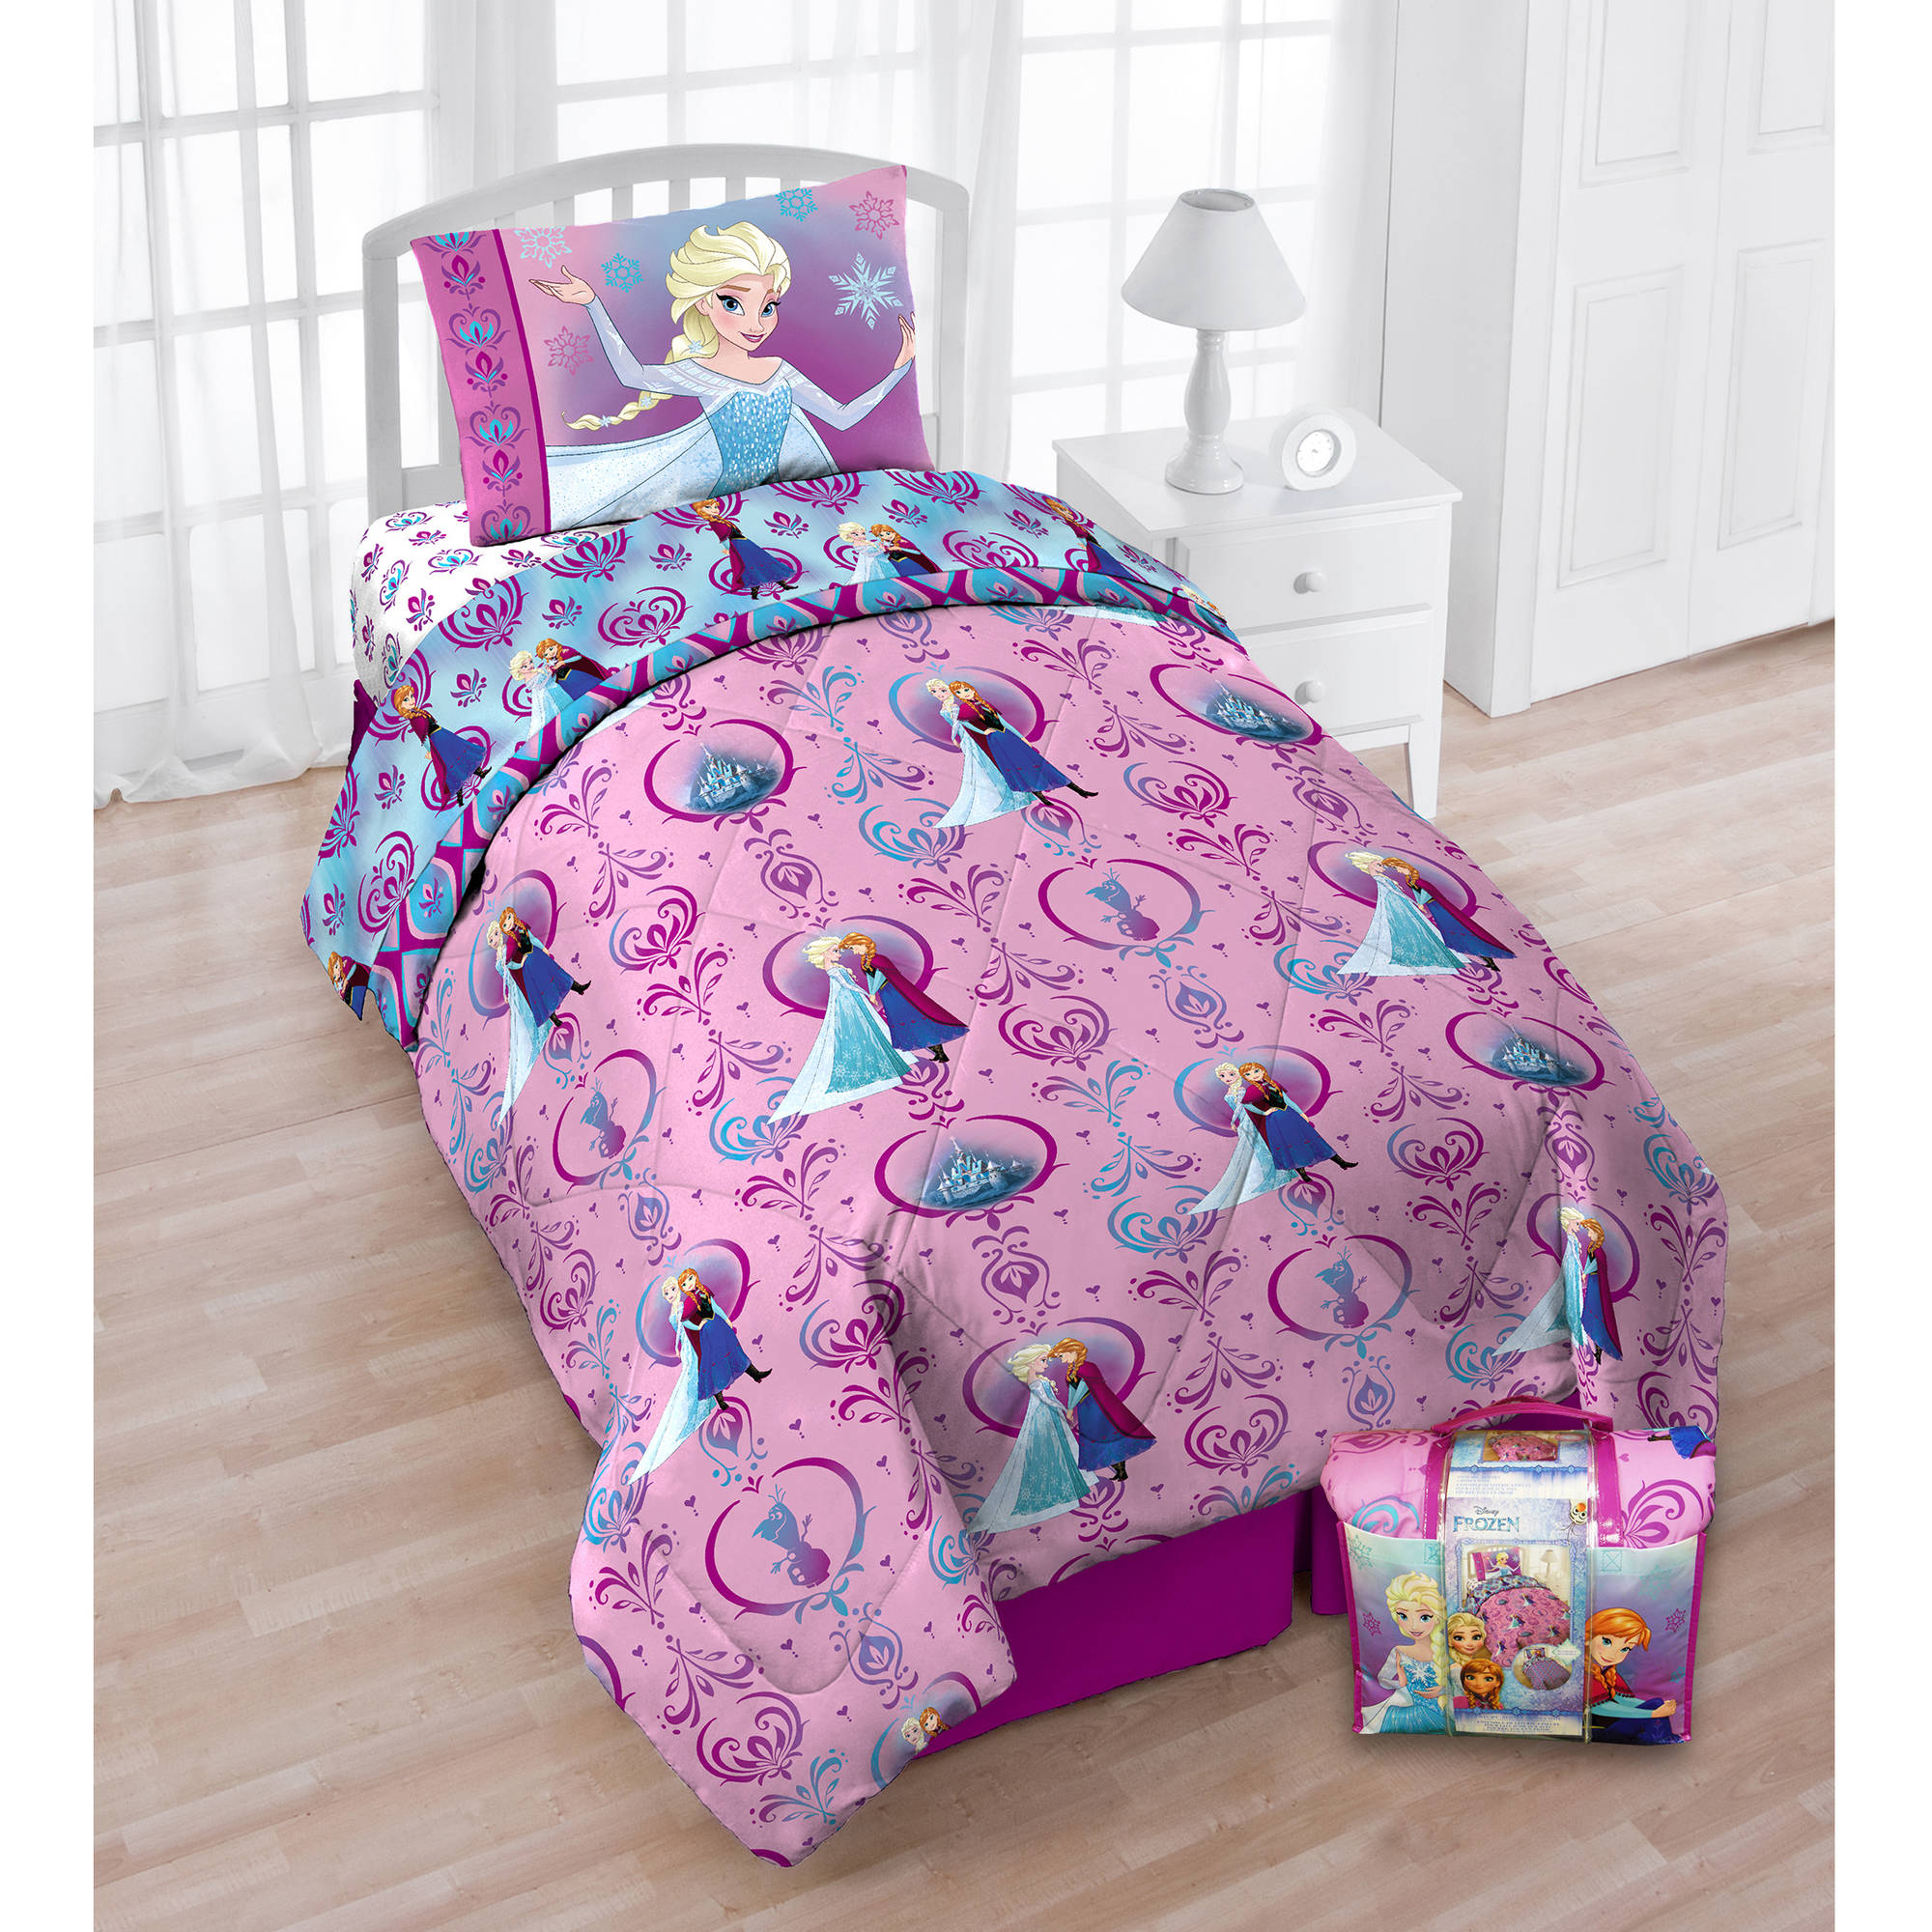 Disneys Frozen Floral Frost Twin Bedding Set With Bonus Tote Exclusive